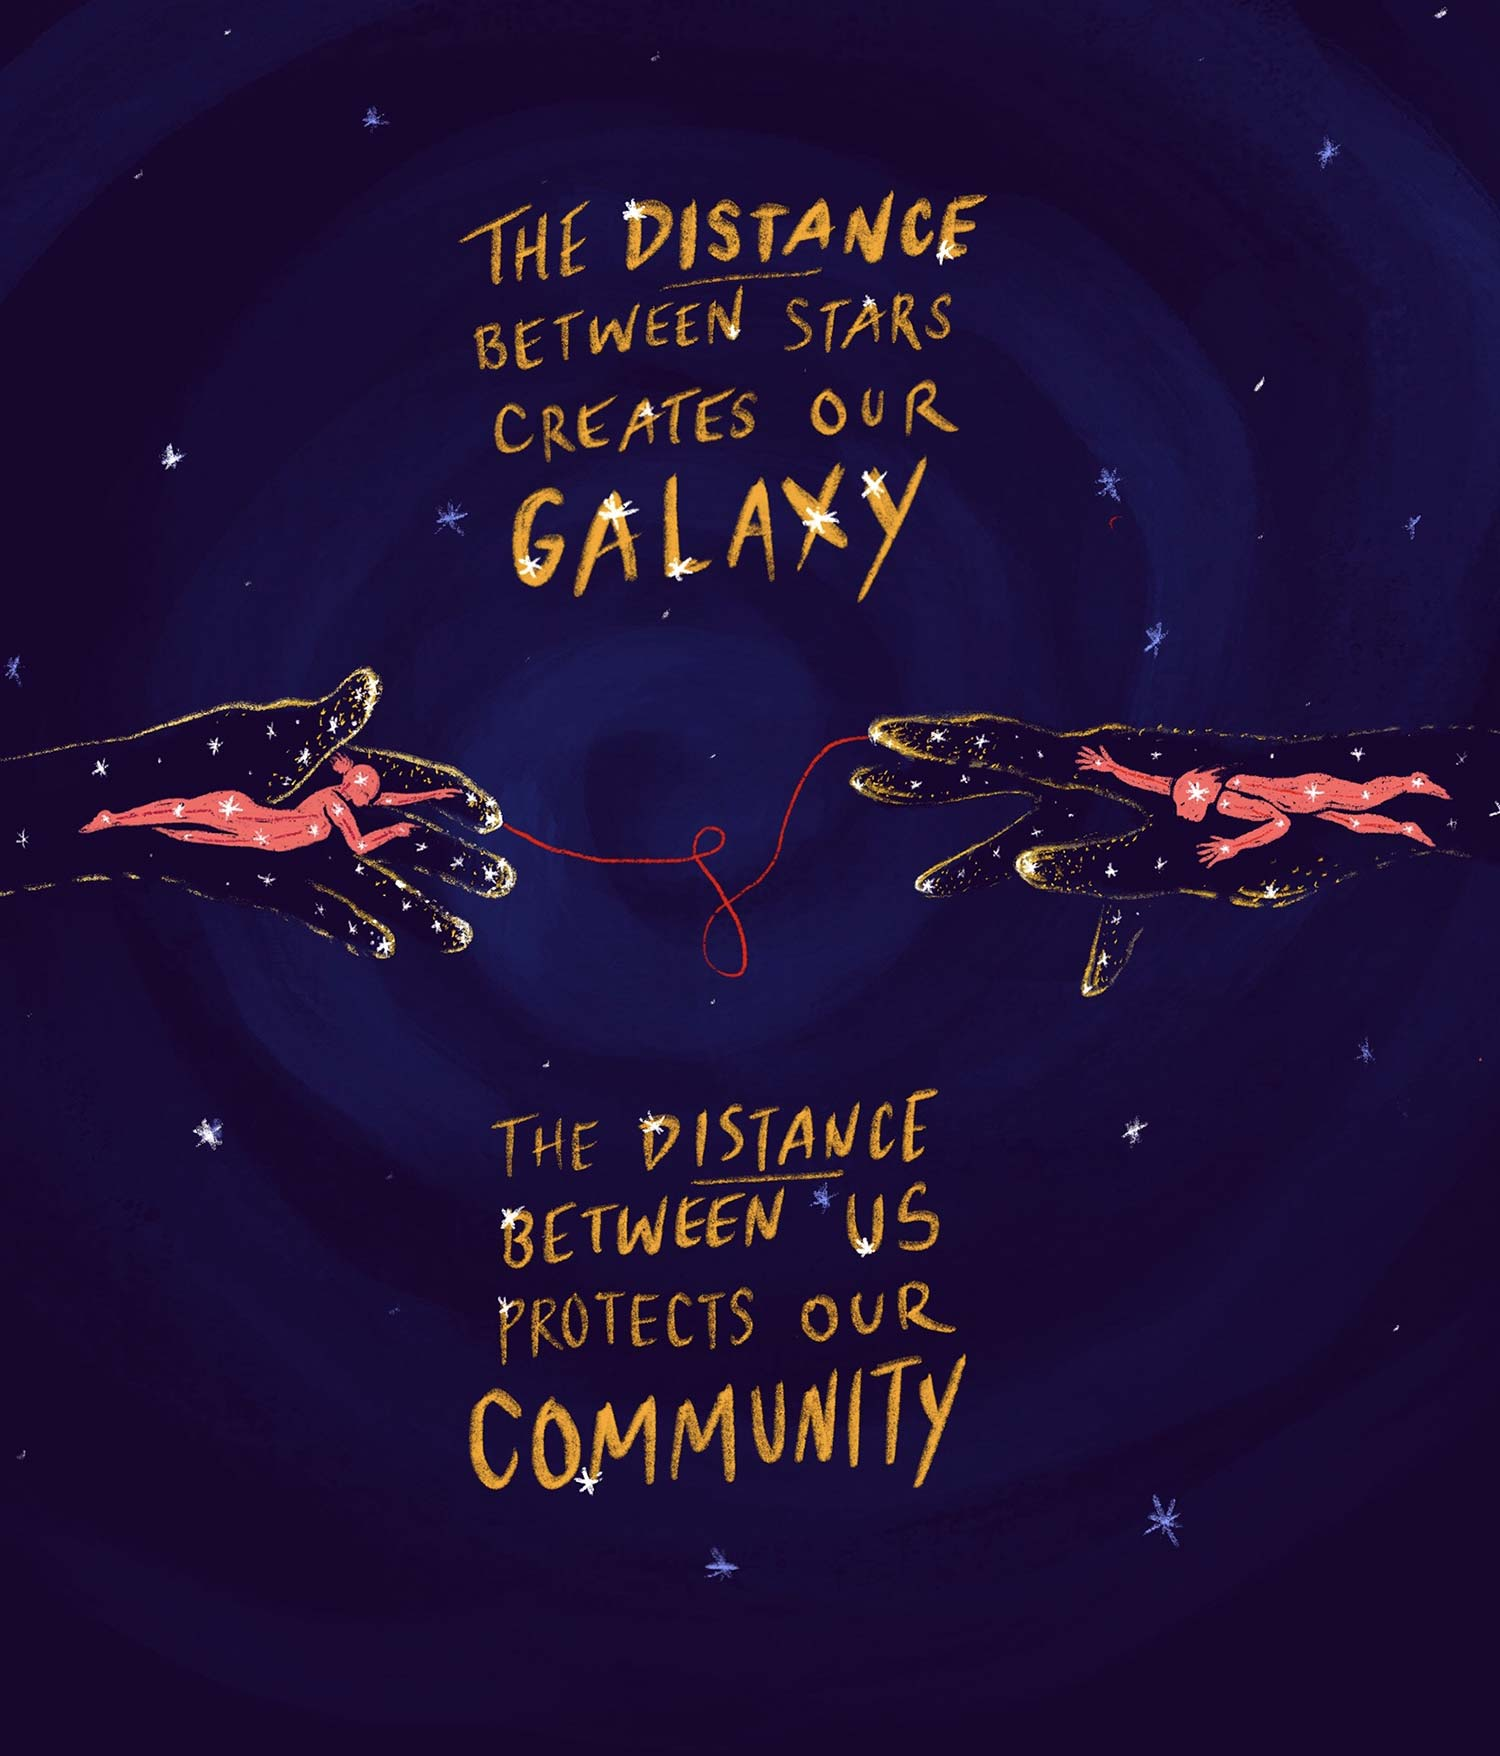 "painting of space with the outline of two hands reaching toward each other and that are linked with a red thread. The hands have images of people also reaching out. The caption says ""the distance between stars creates our galaxy. The distance between us protects our community."